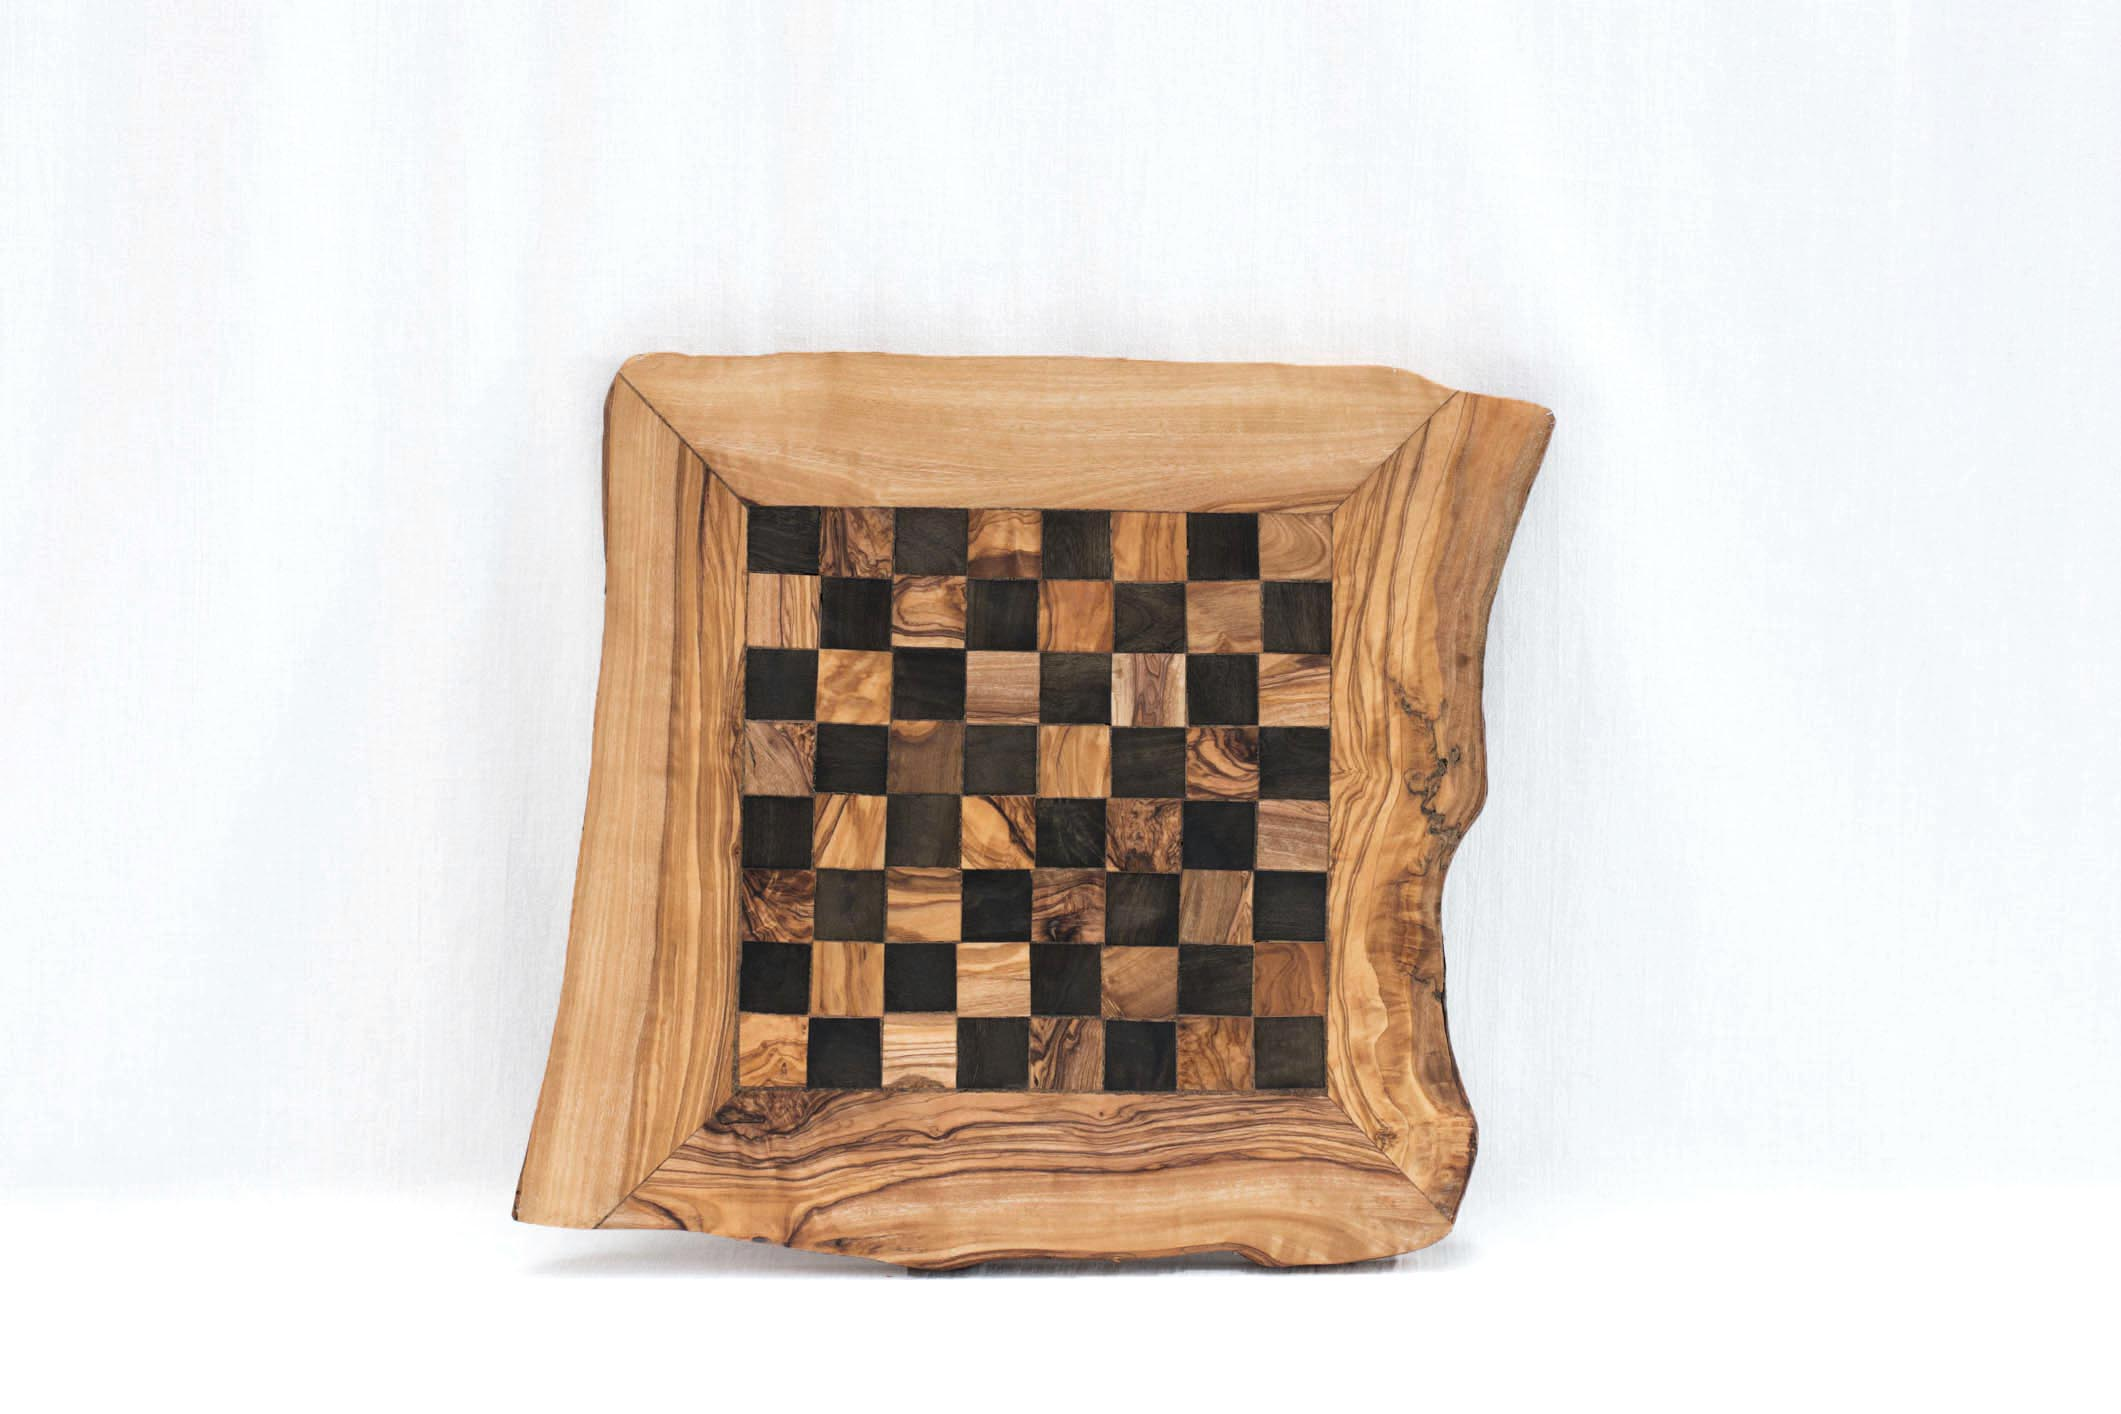 Olive Wood Chess Board Natural Small Medium Big Olive